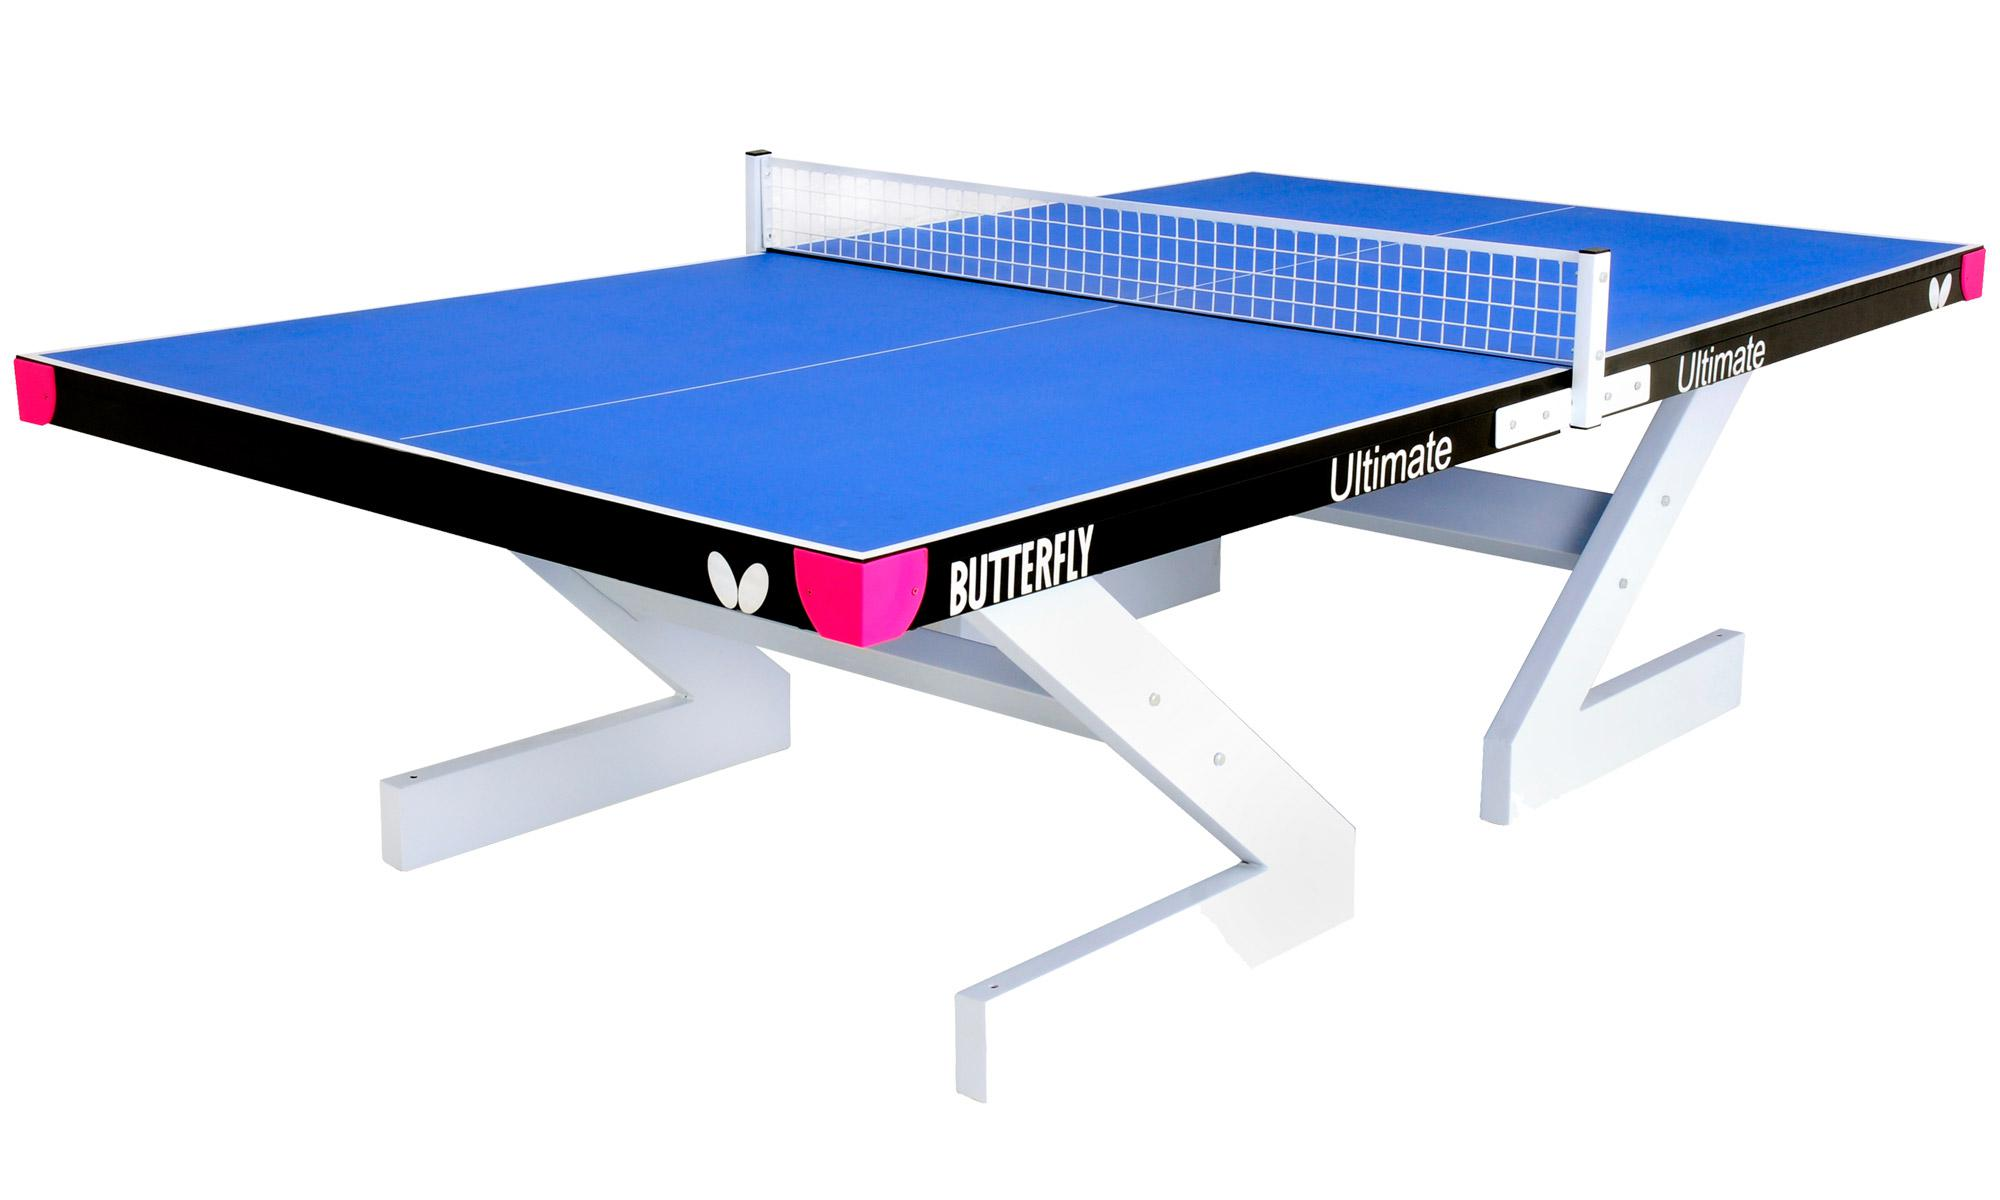 Butterfly ultimate outdoor table tennis table for Table tennis